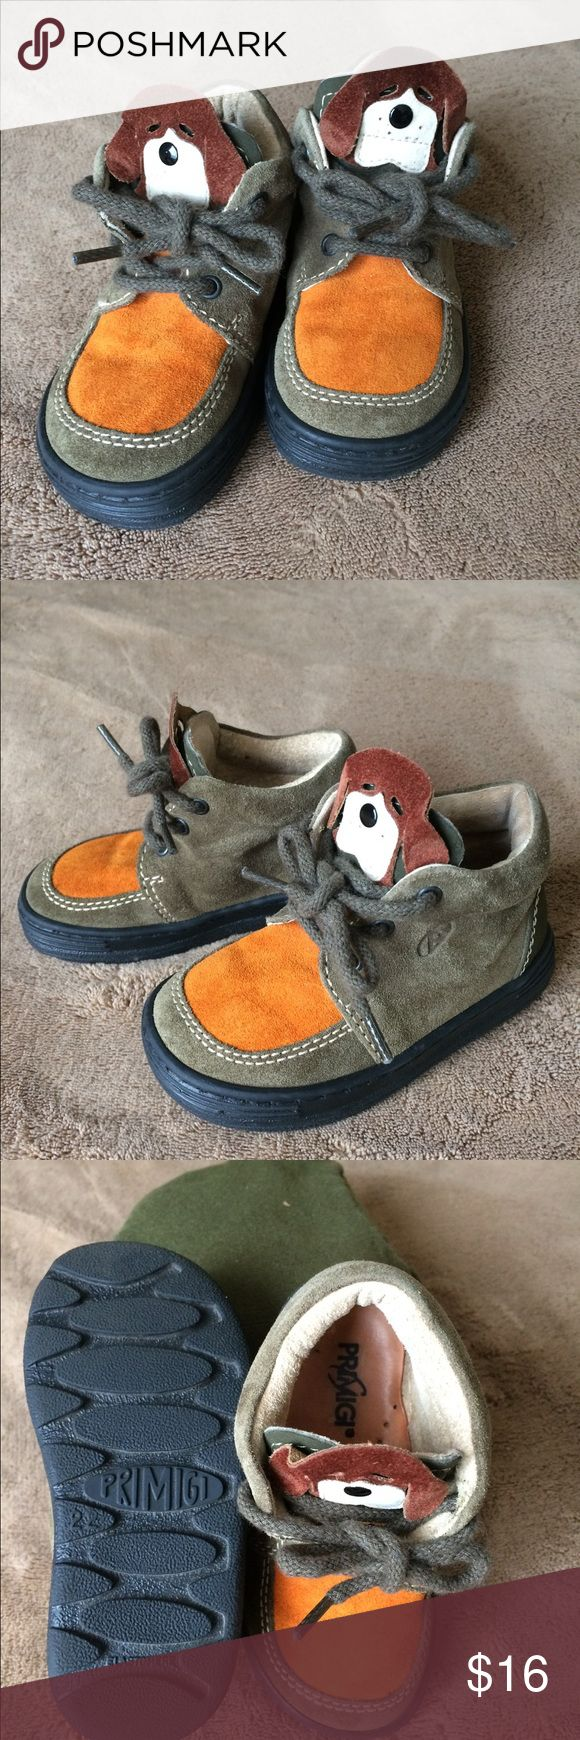 Primigi Toddler Boys Shoes Size 22 Primigi Italian brand European size 22 (US size 6) Very nice leather shoes. Worn once maybe twice,but is in great condition. Smoke and pet free home. Primigi Shoes Boots